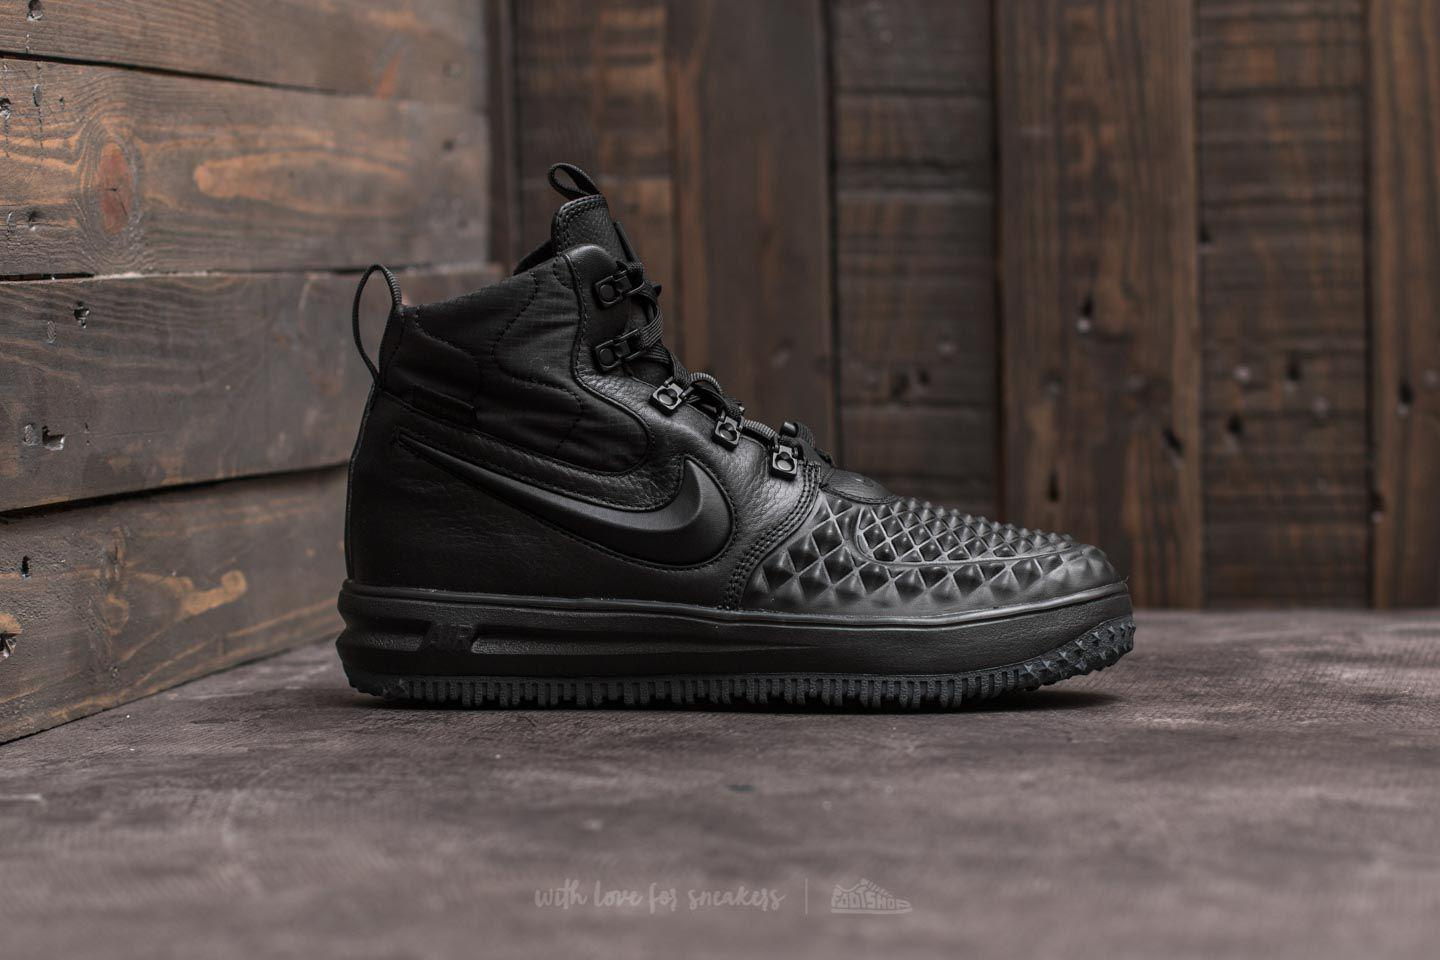 new arrival 8b881 151ed Nike Lunar Force 1 Duckboot  17 (gs) Black  Black-anthracite in ...